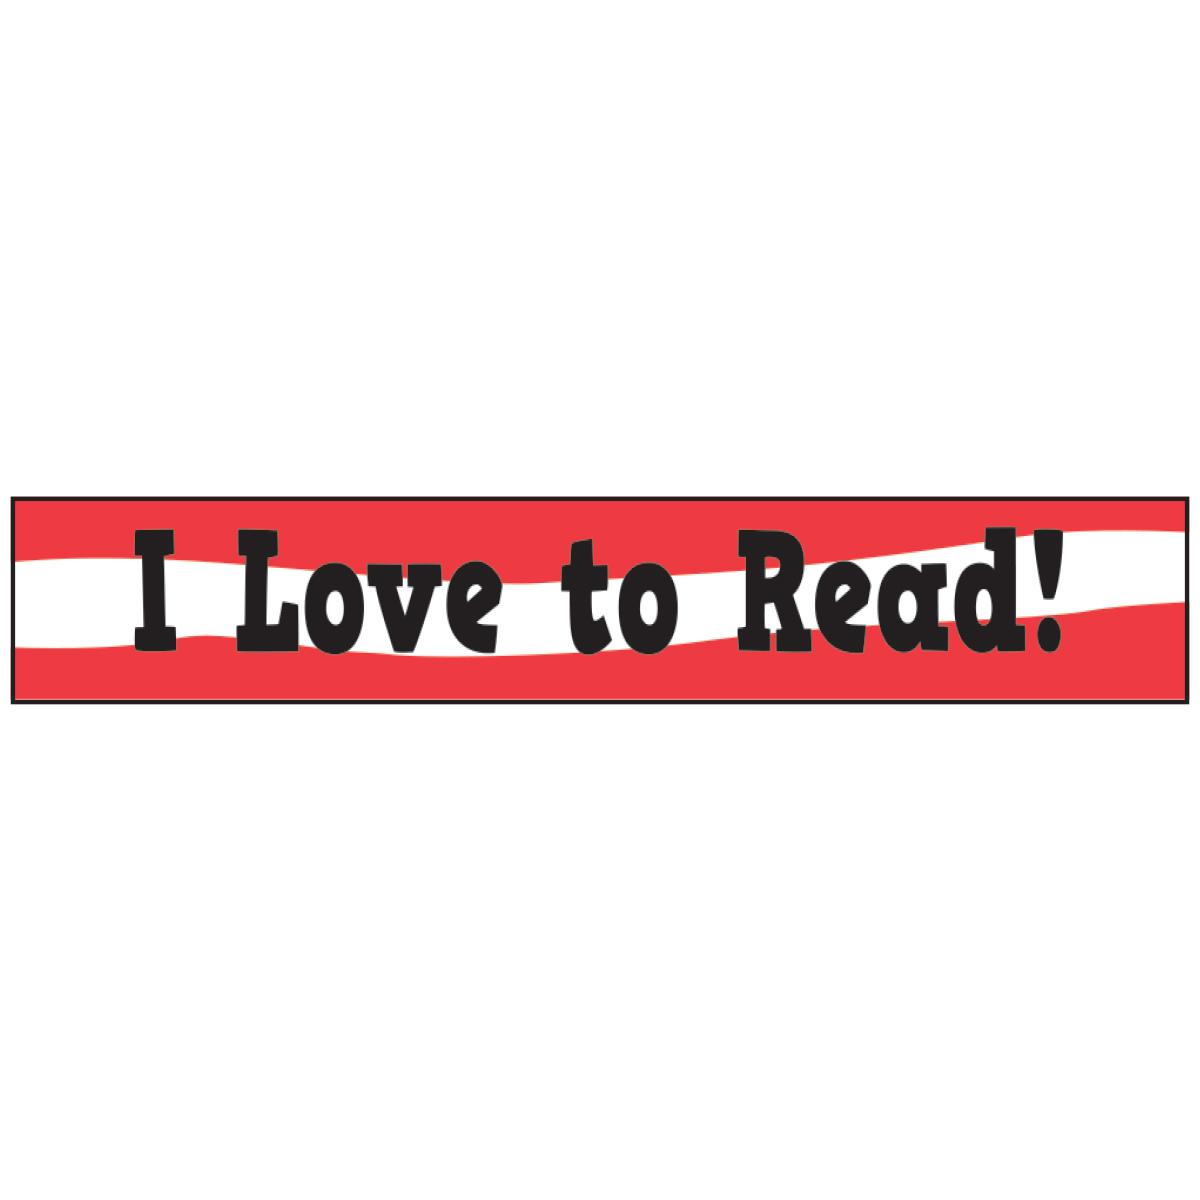 I Love to Read! Fancy Wristbands Pack